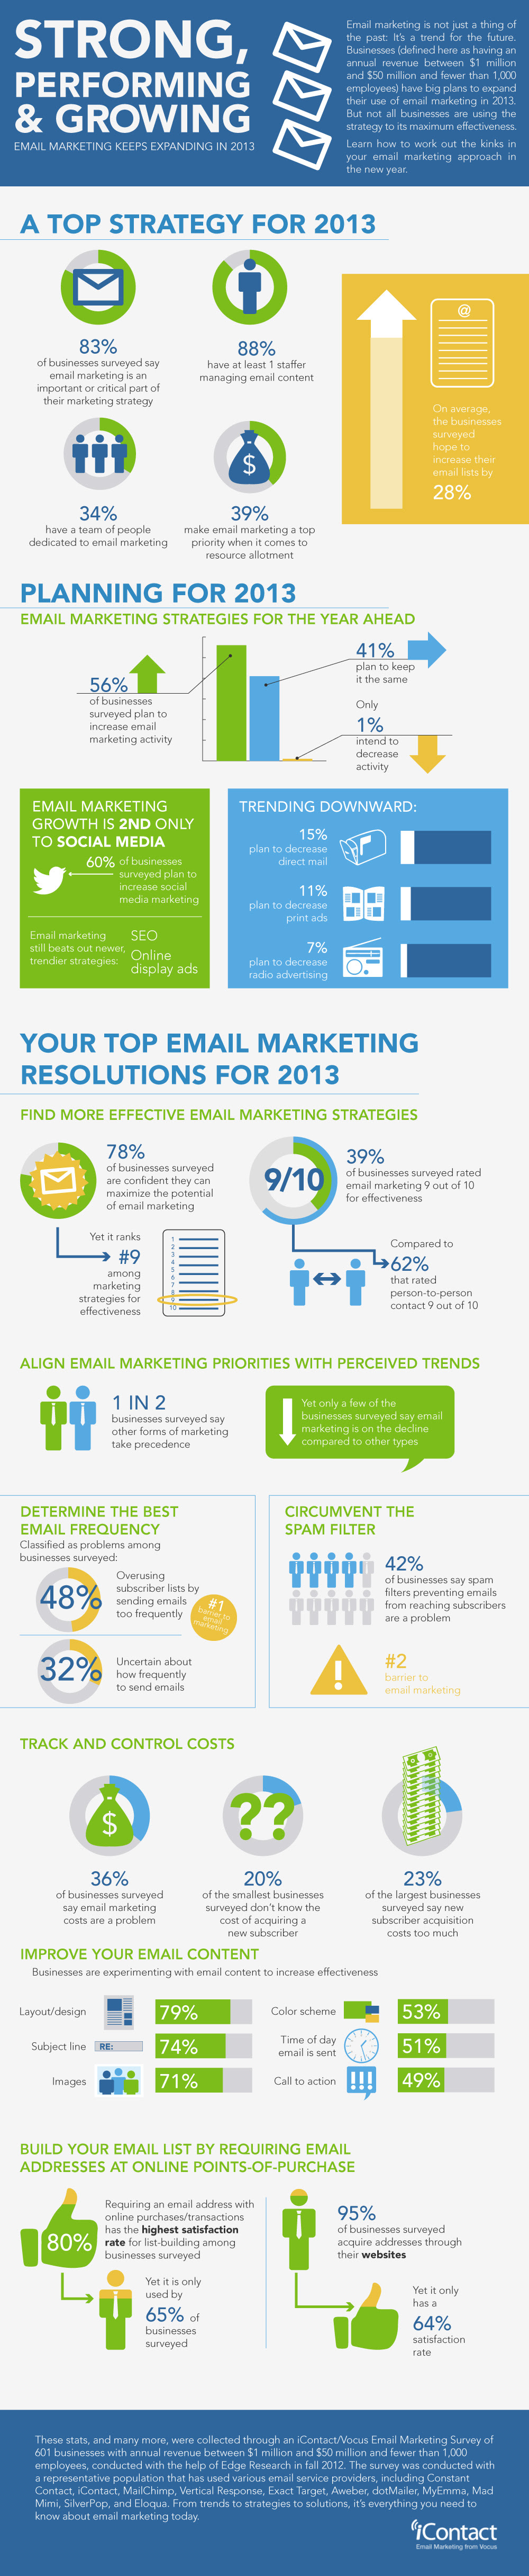 Email Marketing Keep Expanding In 2013: infographic